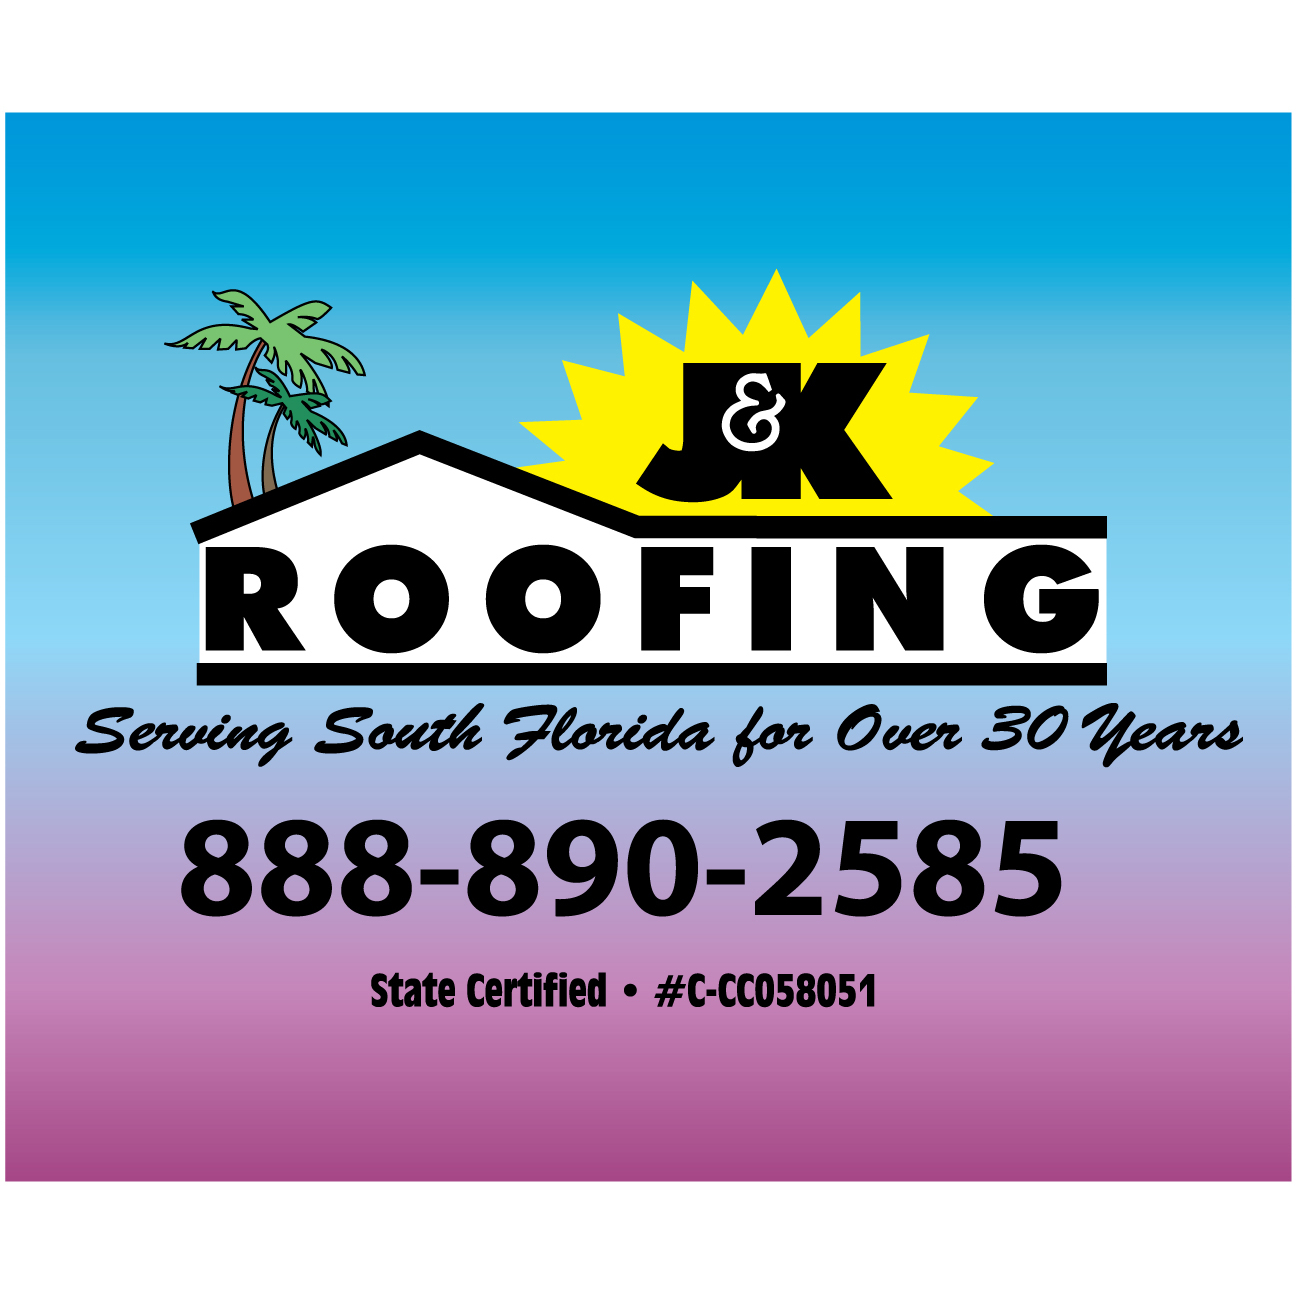 J & K Roofing, Inc.